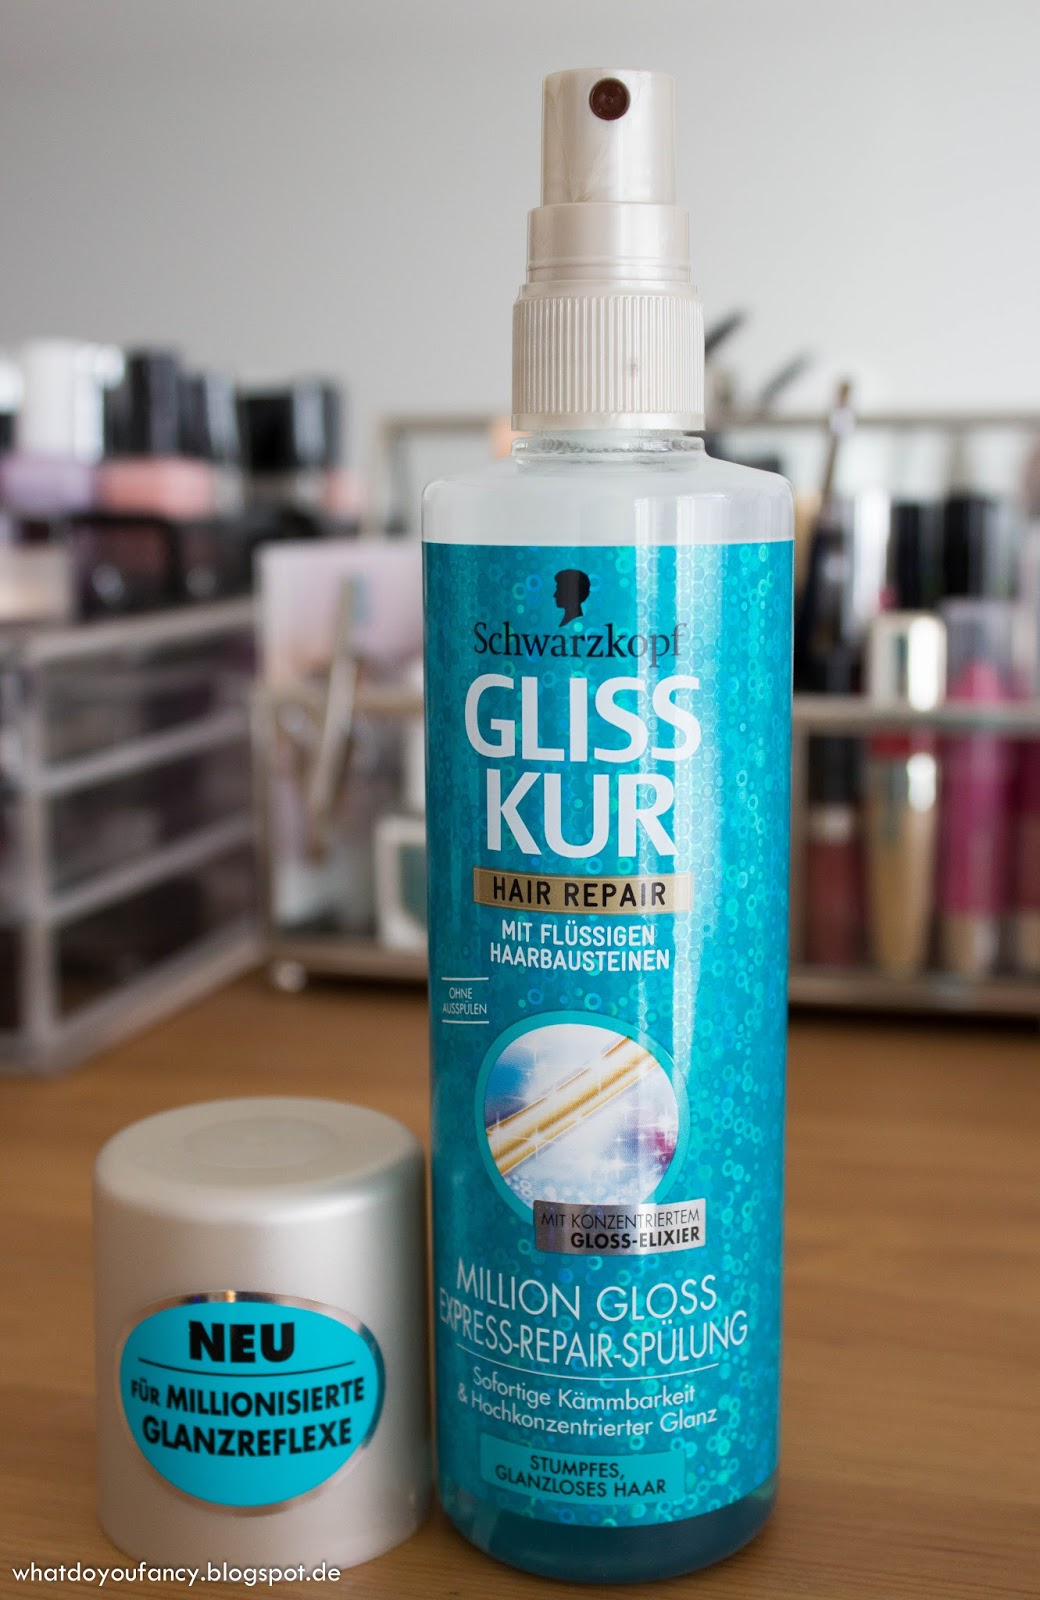 Schwarzkopf Gliss Kur Million Gloss Express-Repair-Spülung, 200 ml, 1,95 €